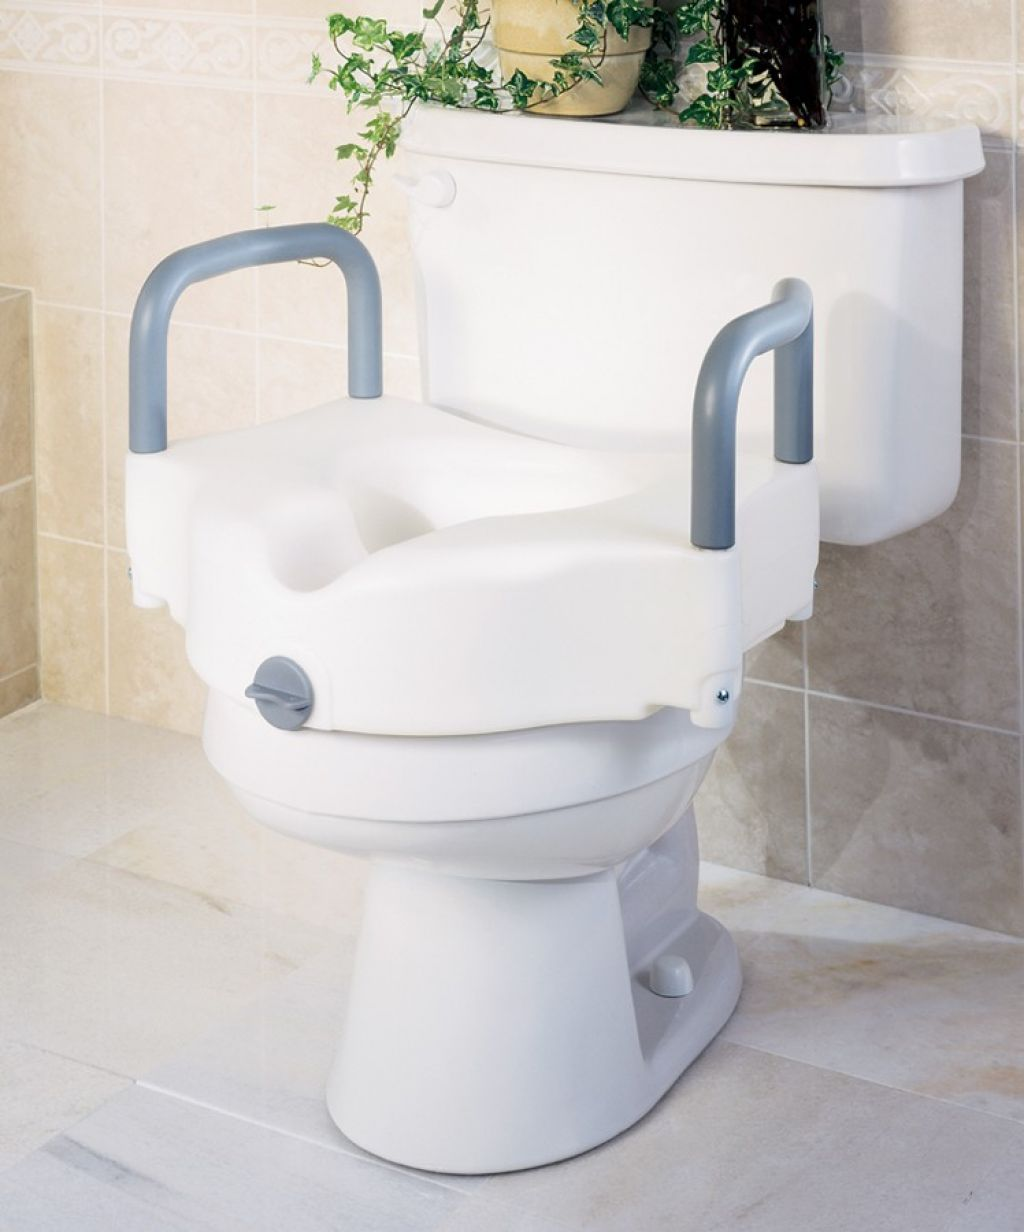 5-interior-for-elderly-raised-toilet-seat-with-arms